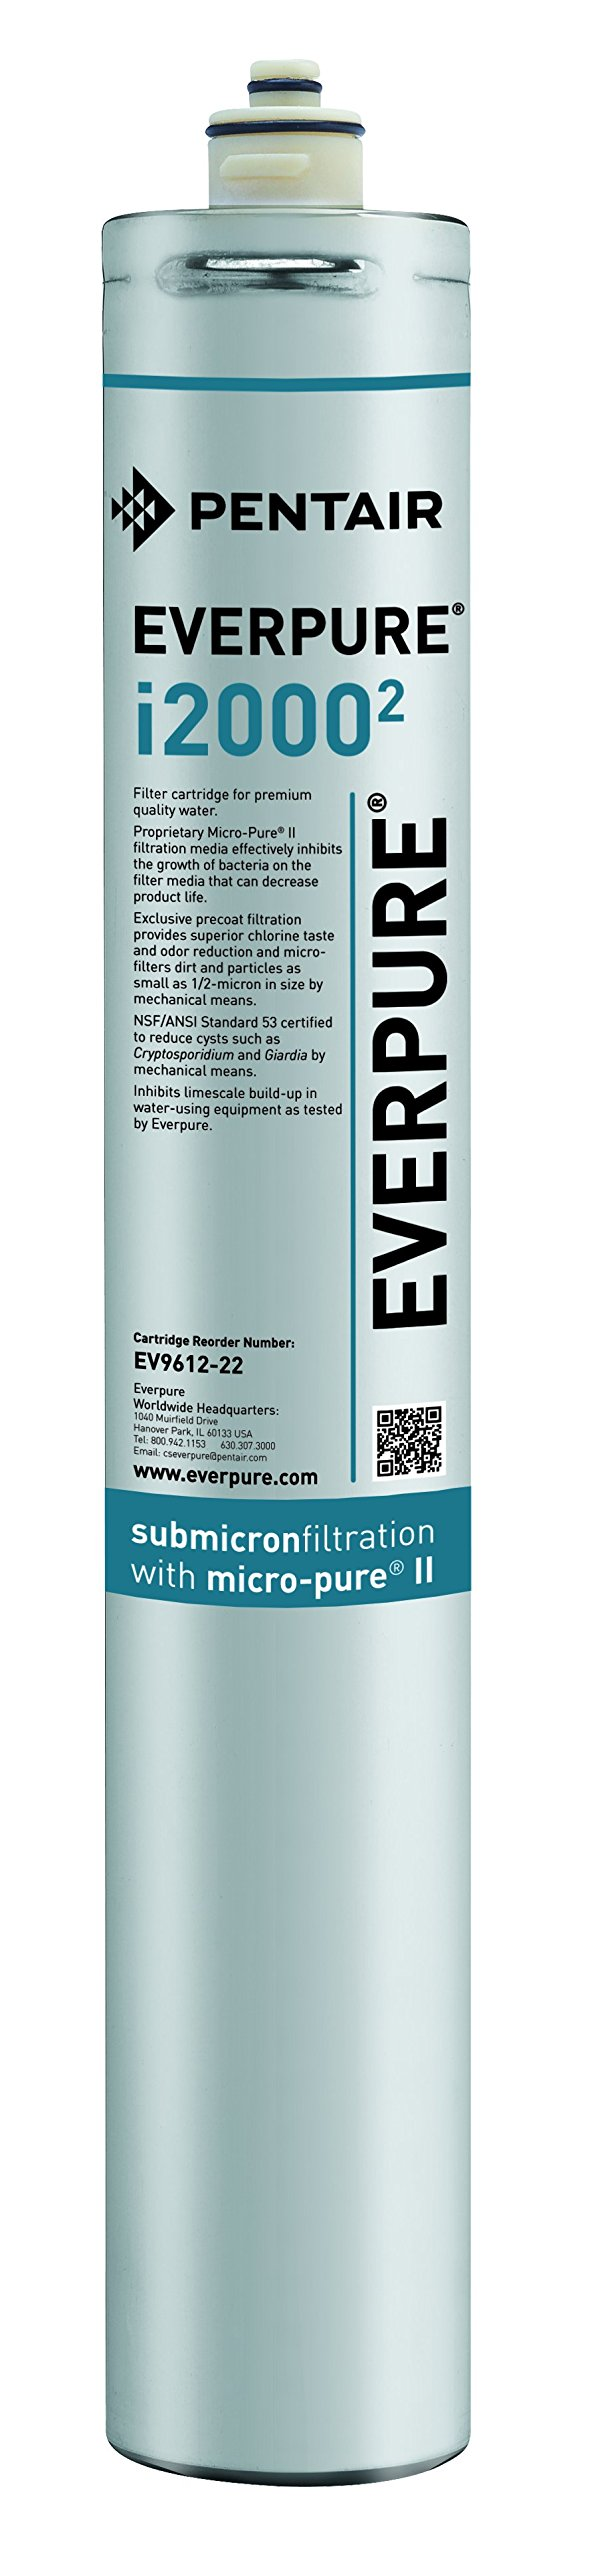 Everpure EV9612-22 i2000^2 Filter Cartridge by Everpure